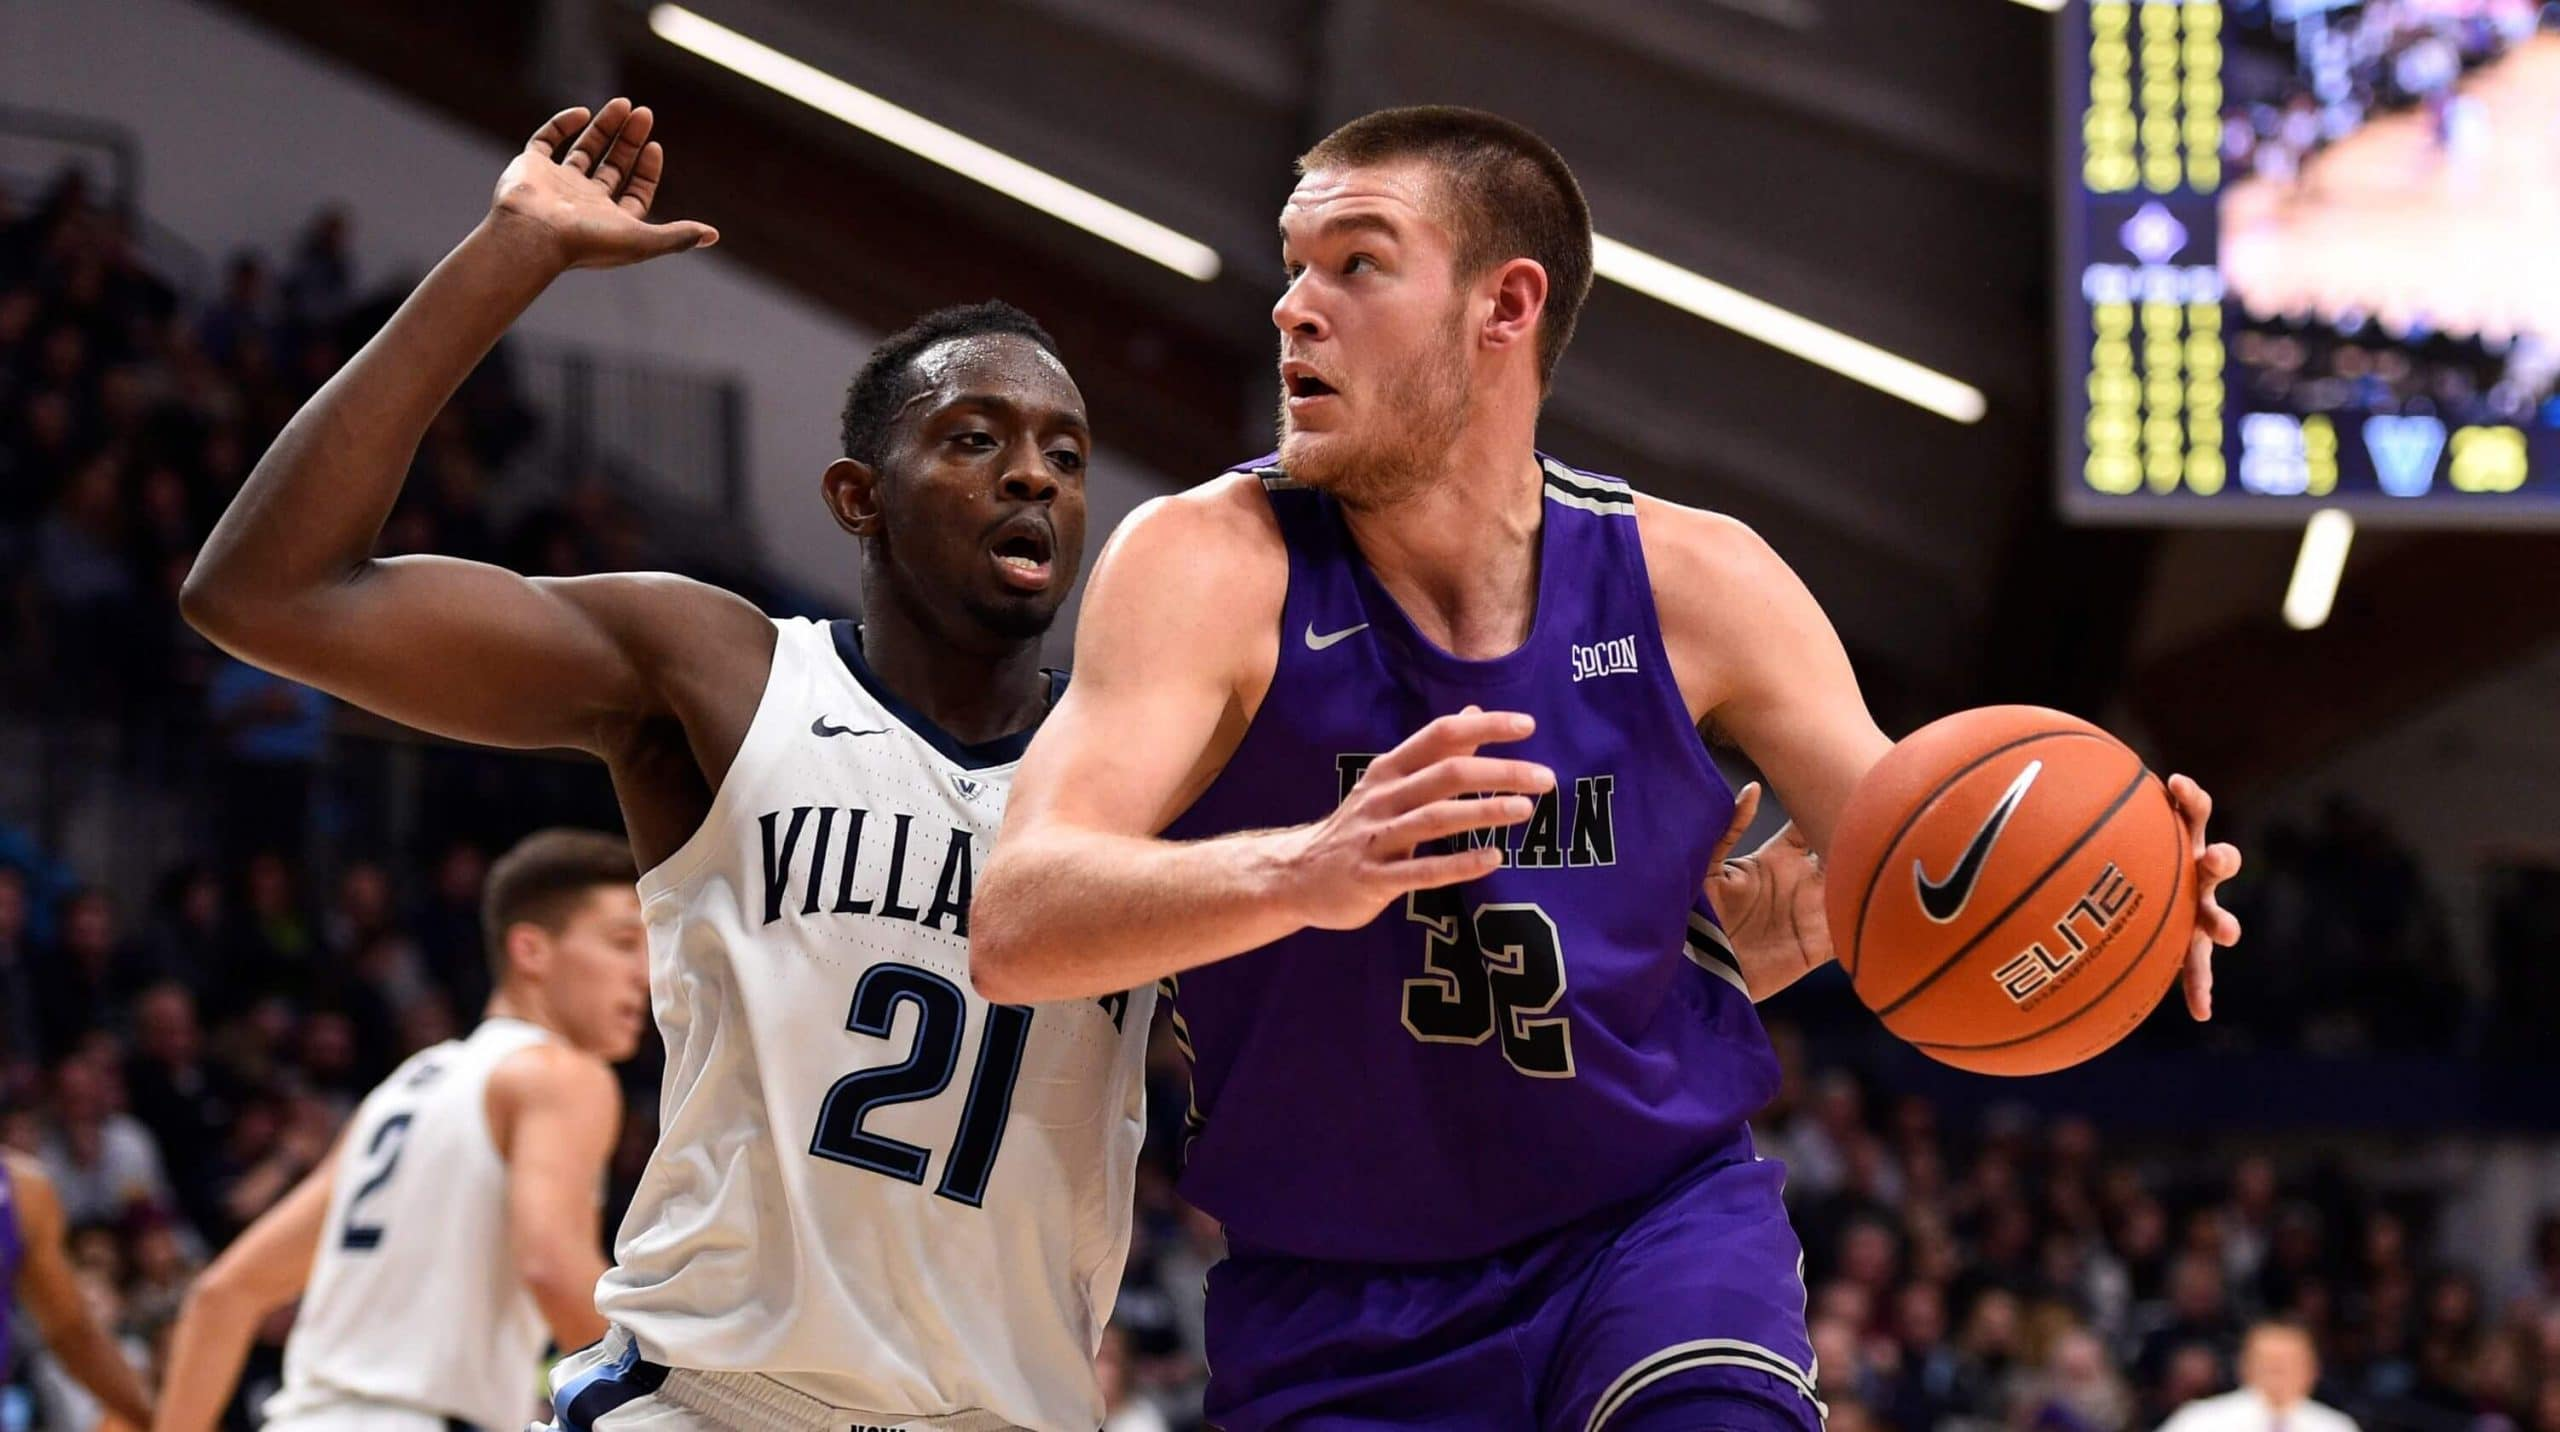 After their win over Villanova, the Furman basketball cinderella story began taking shape